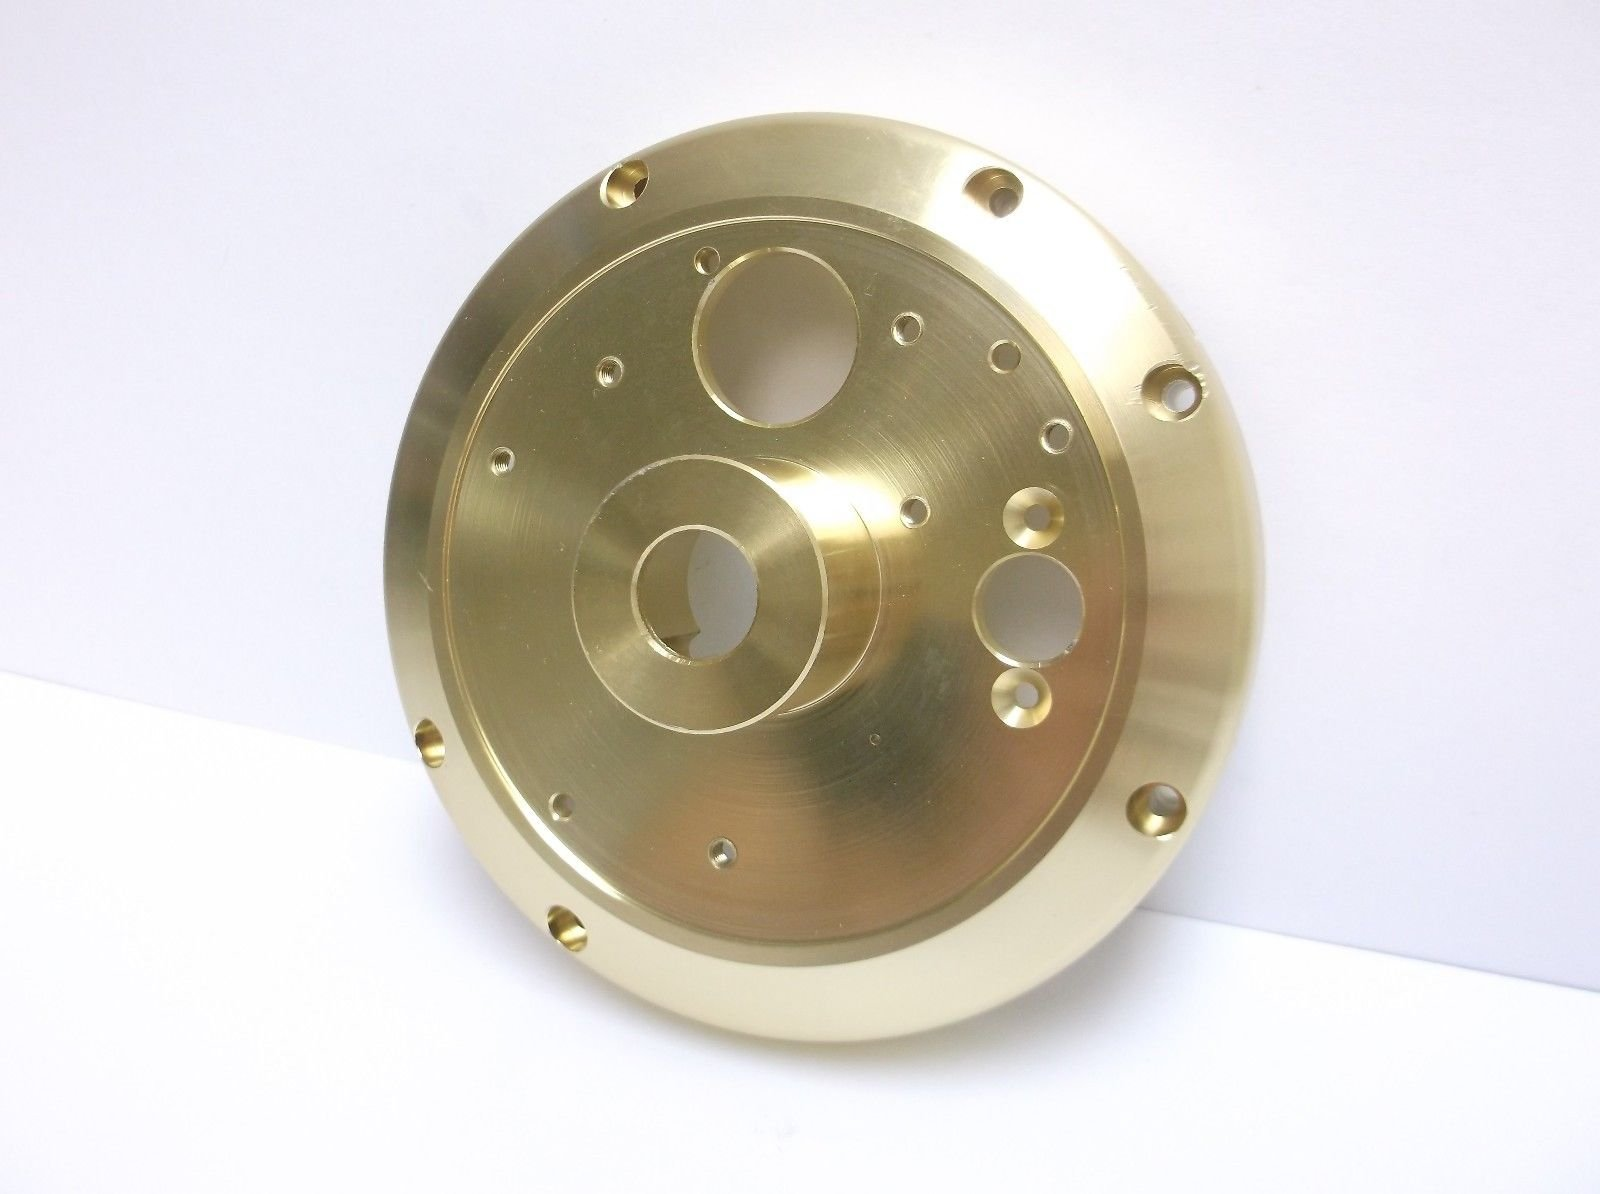 SHIMANO BIG GAME REEL PART TT0265 Tiagra 50 50W 50WLRS - Right Side Plate (A)